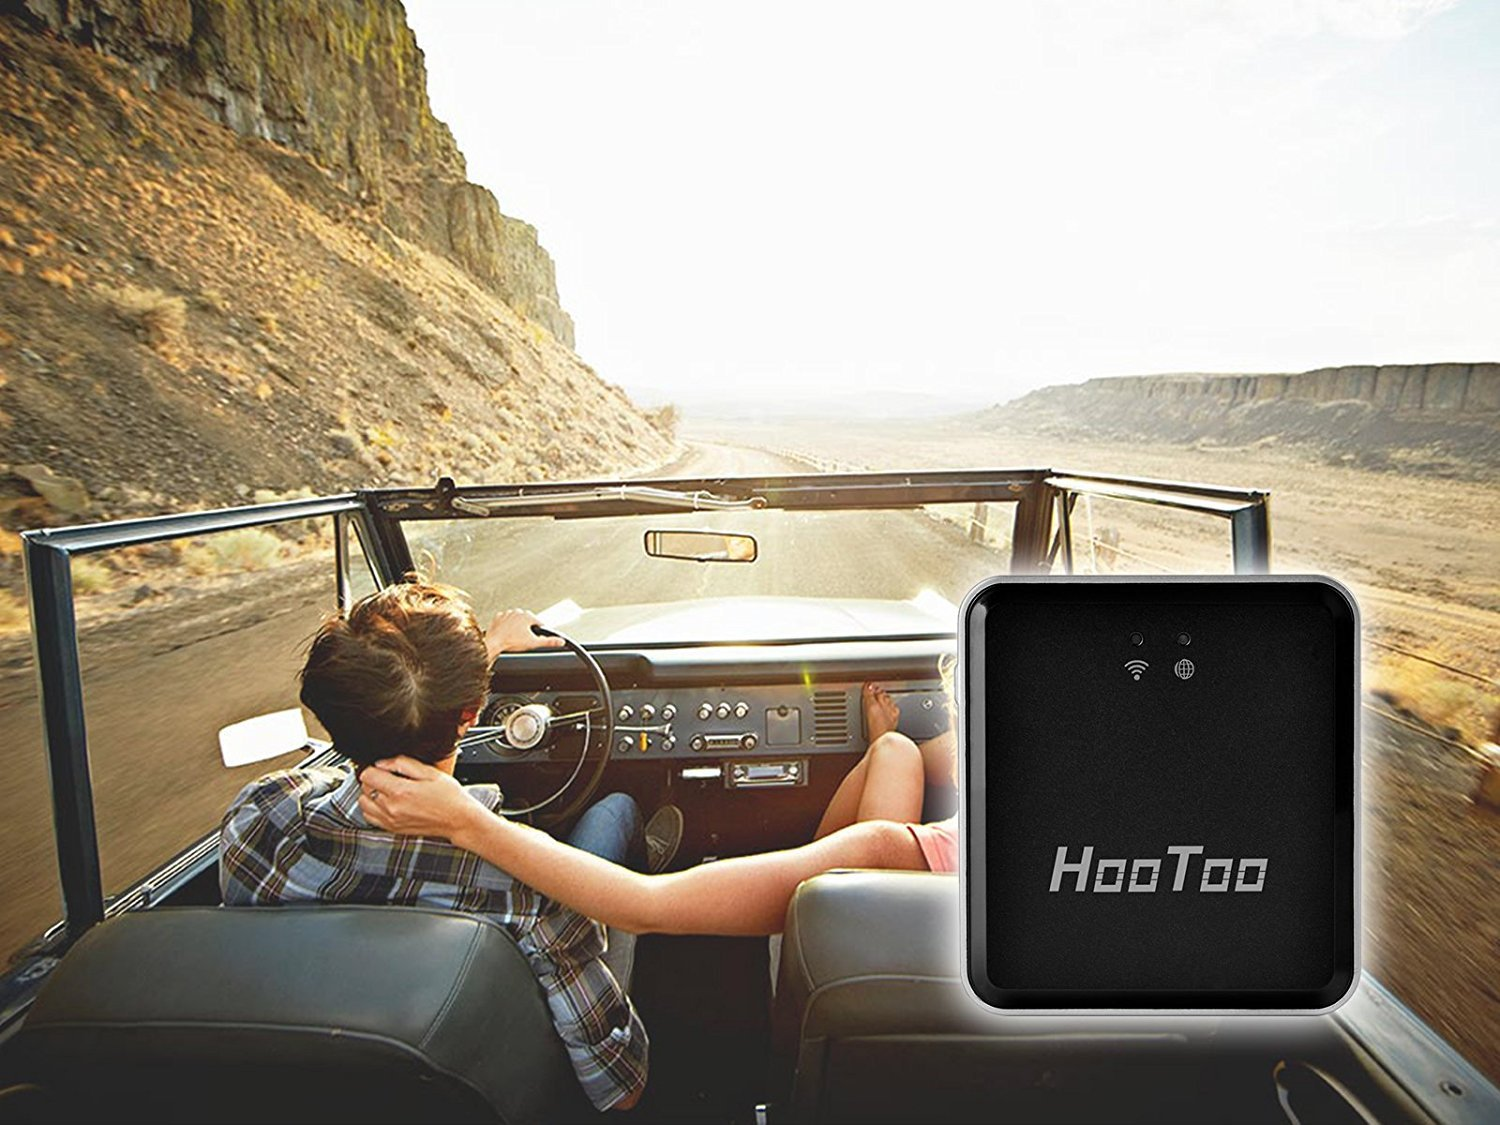 HooToo Wireless Travel Router, USB Port, N150 Wi-Fi Router, USB Powered, High Performance, Mini Router- TripMate Nano (Not a Hotspot) by HooToo (Image #10)